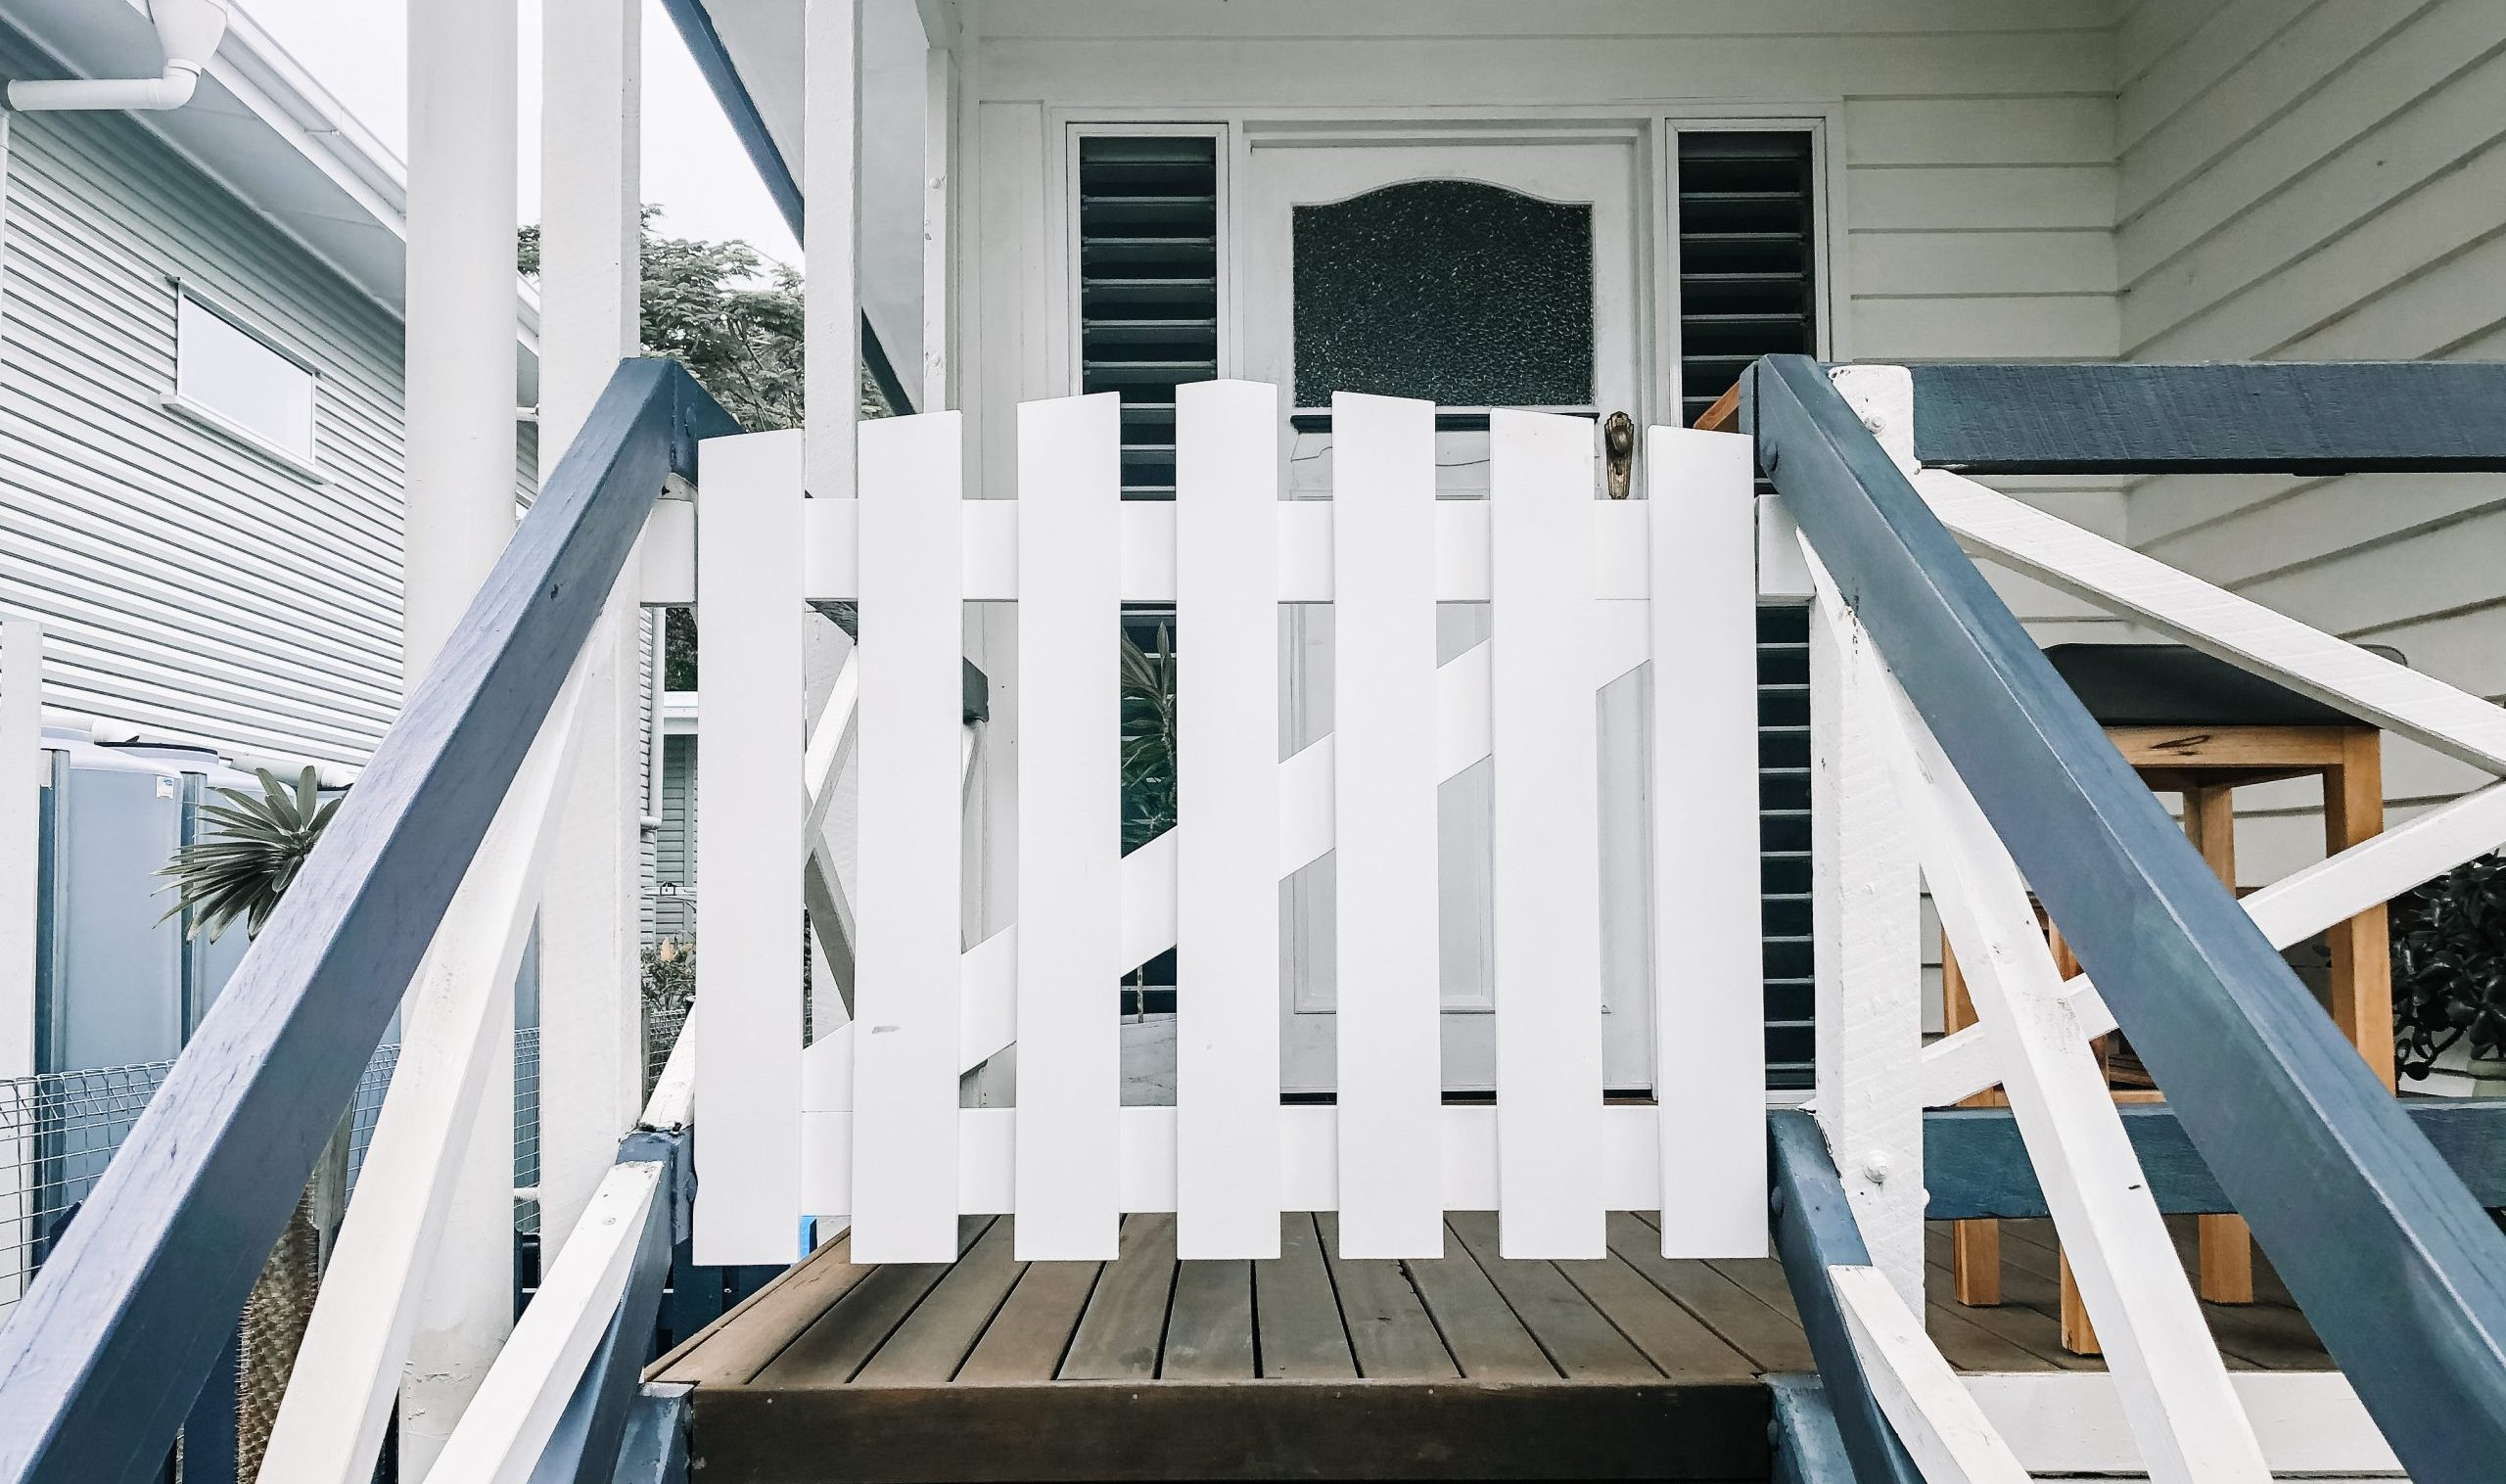 Timber gates and fences